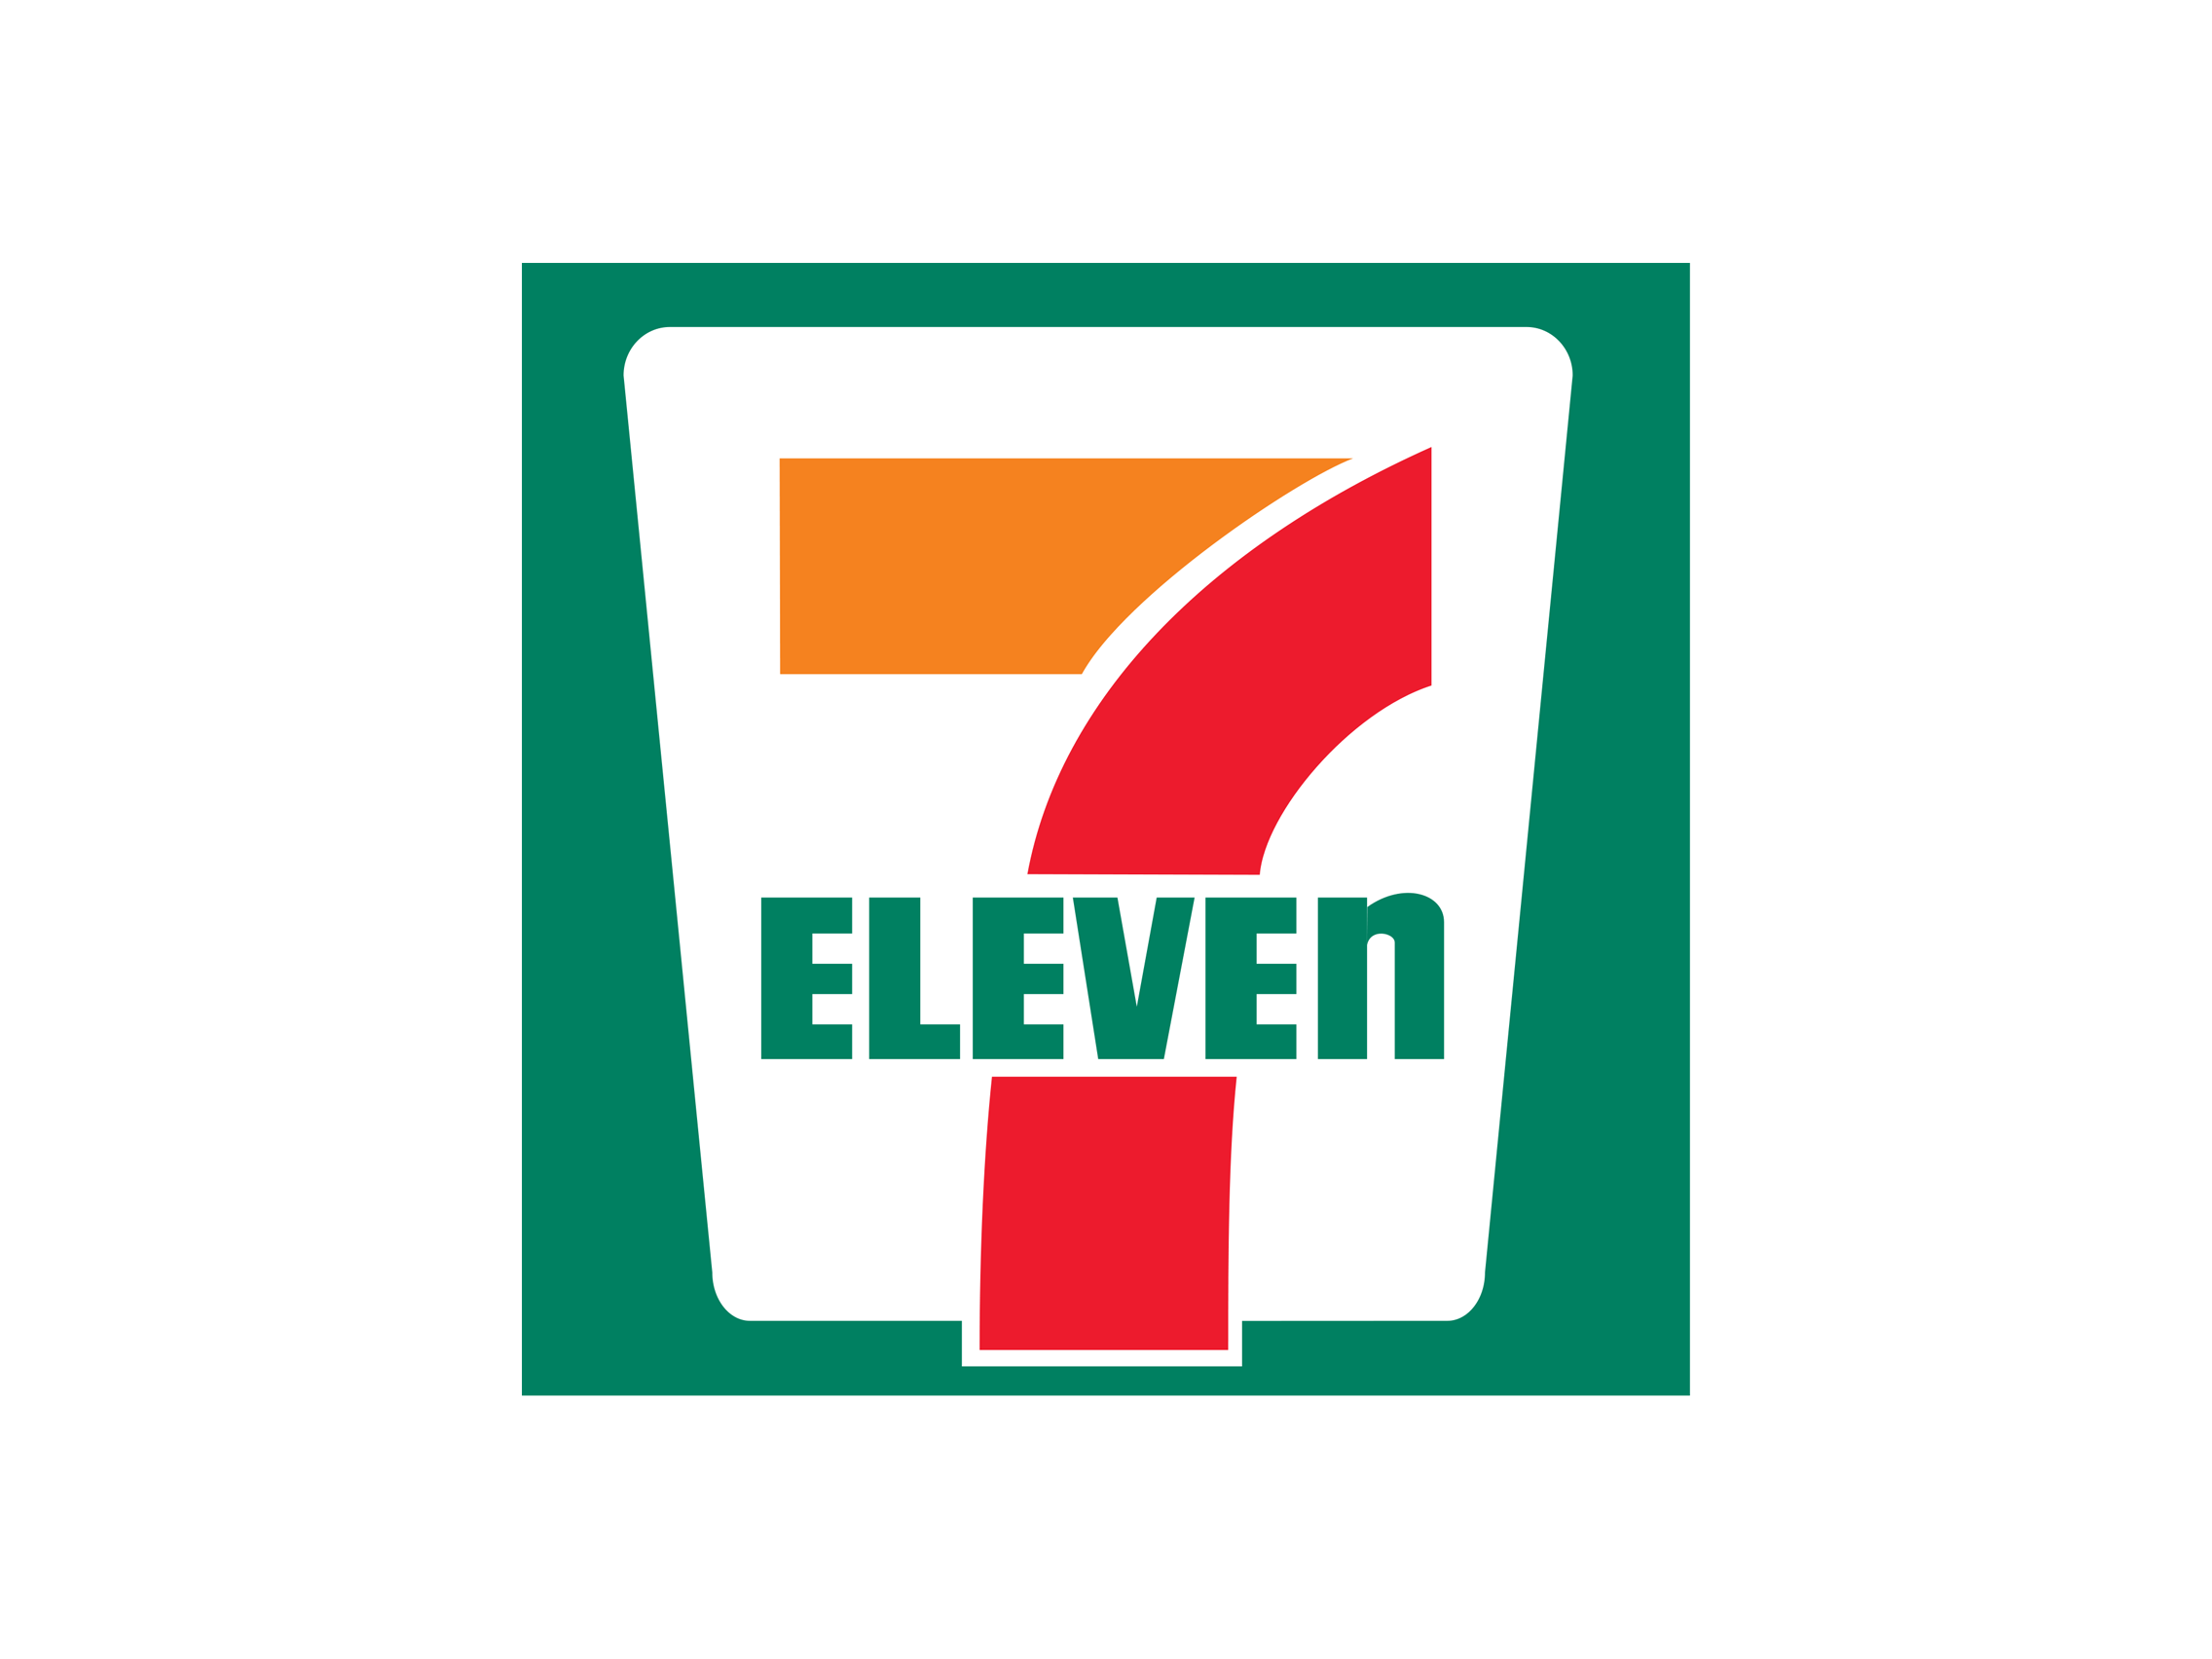 7_eleven_brand_logo_1404953661_9277.png